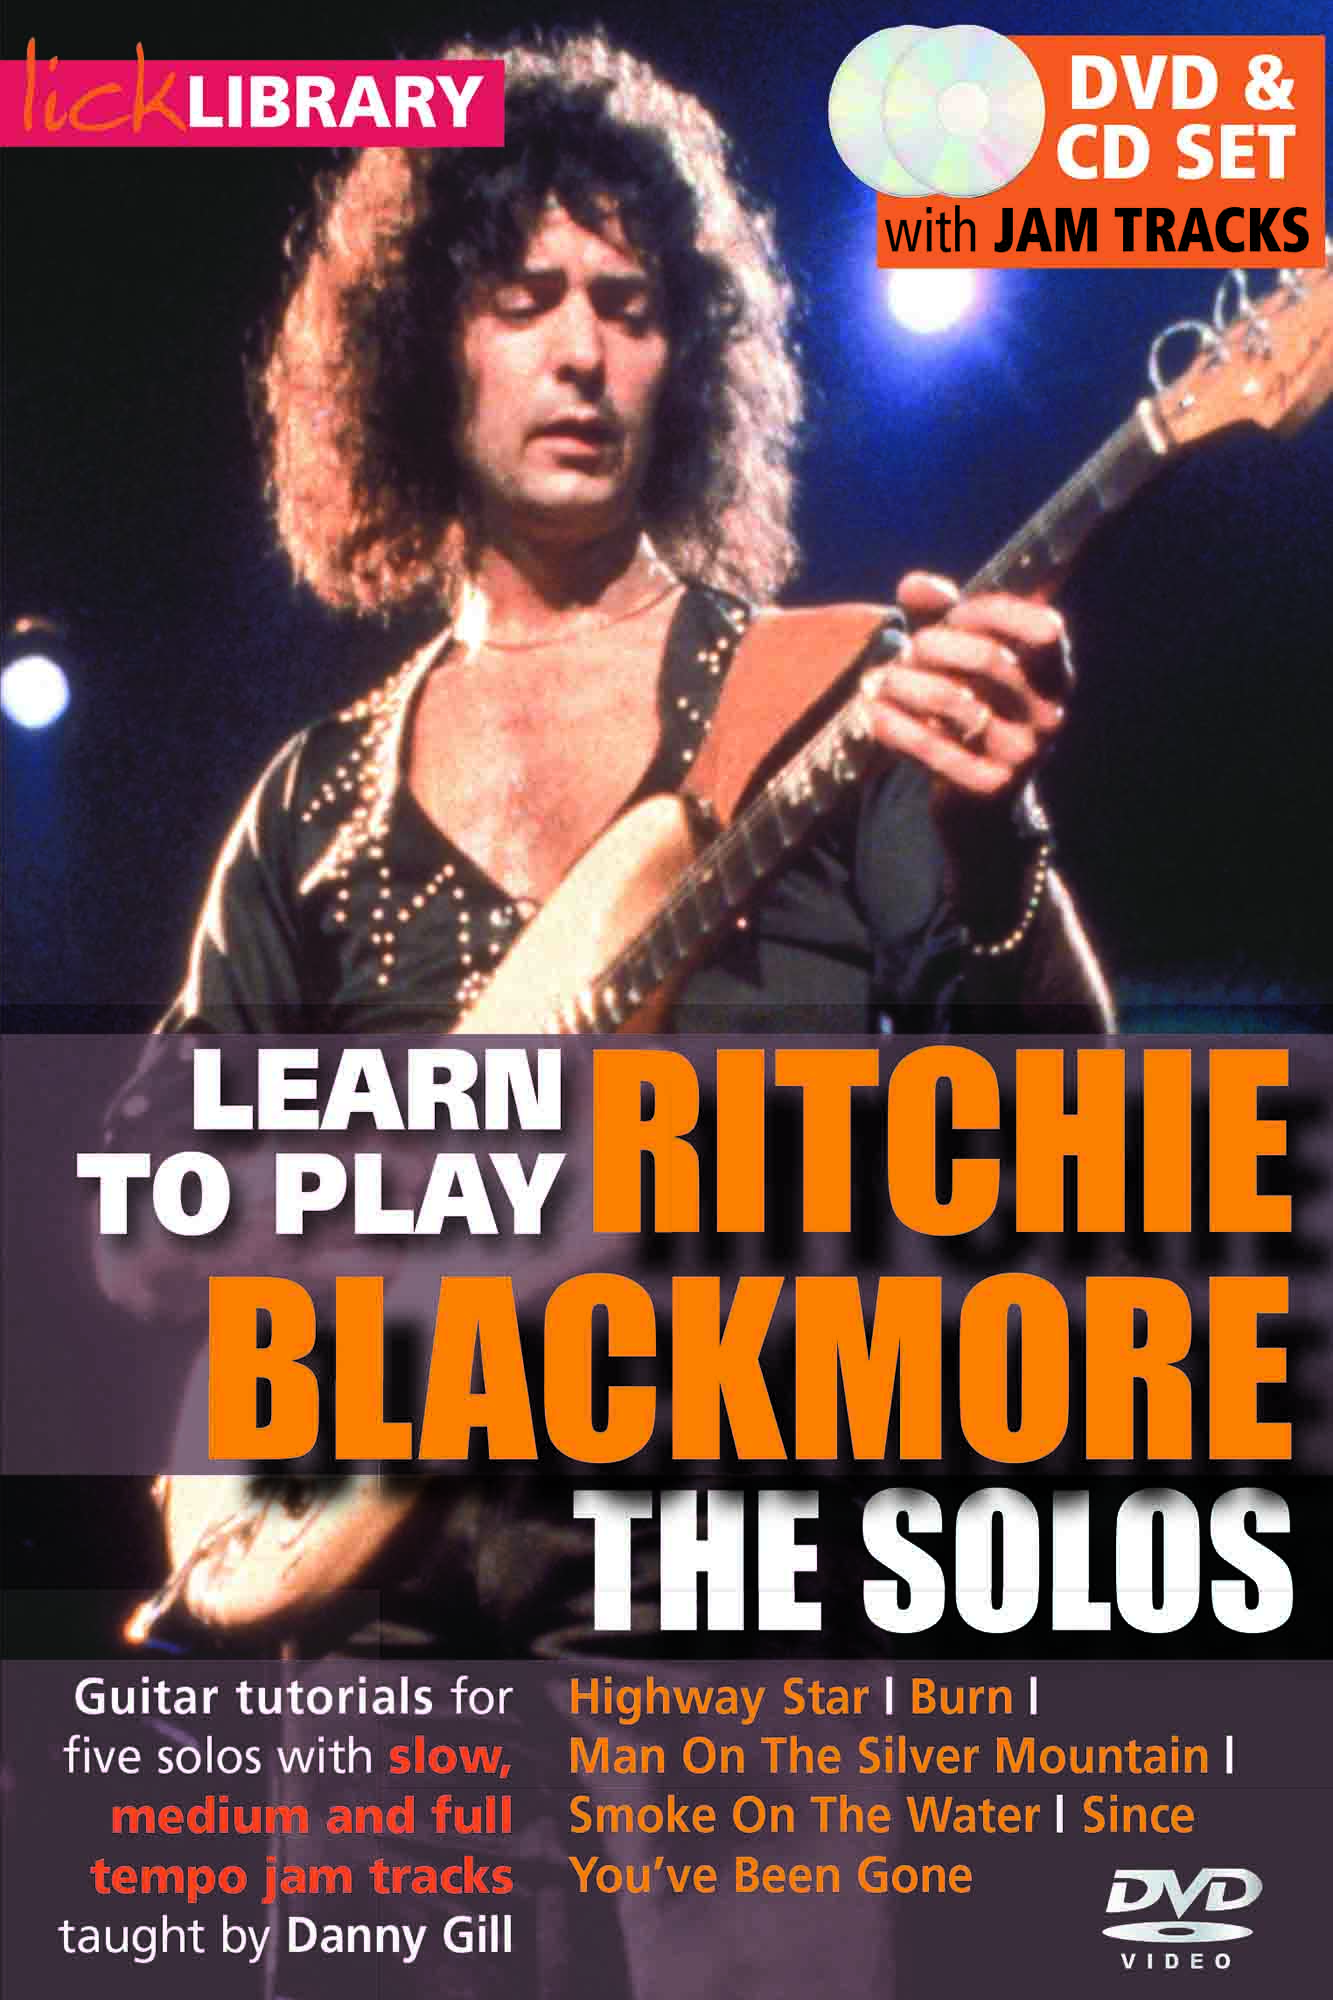 Learn To Play Ritchie Blackmore - The Solos